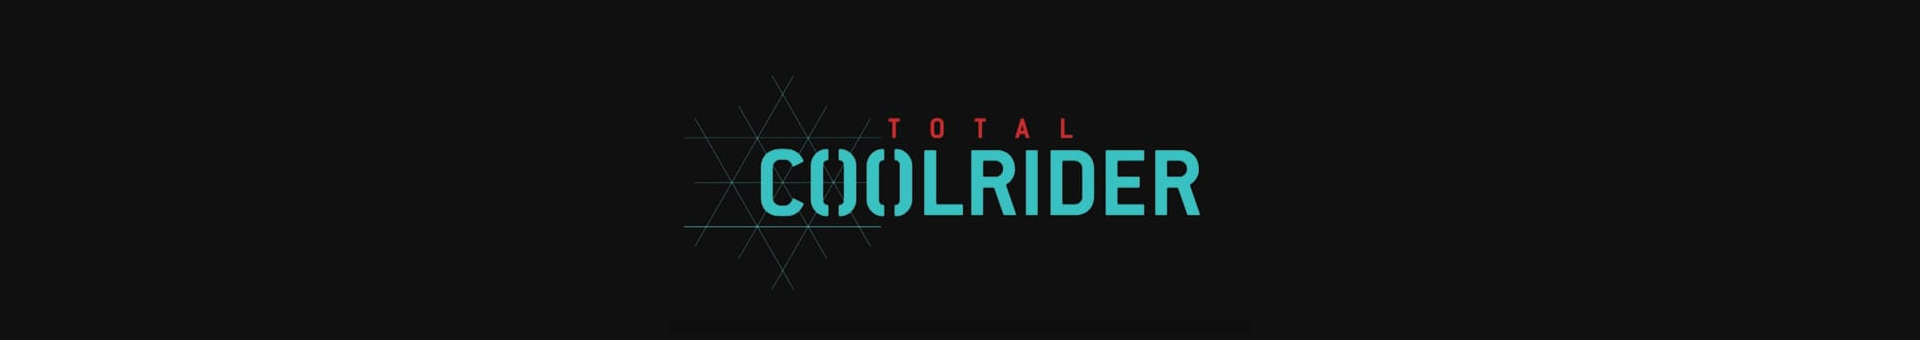 COVER. COOLrider